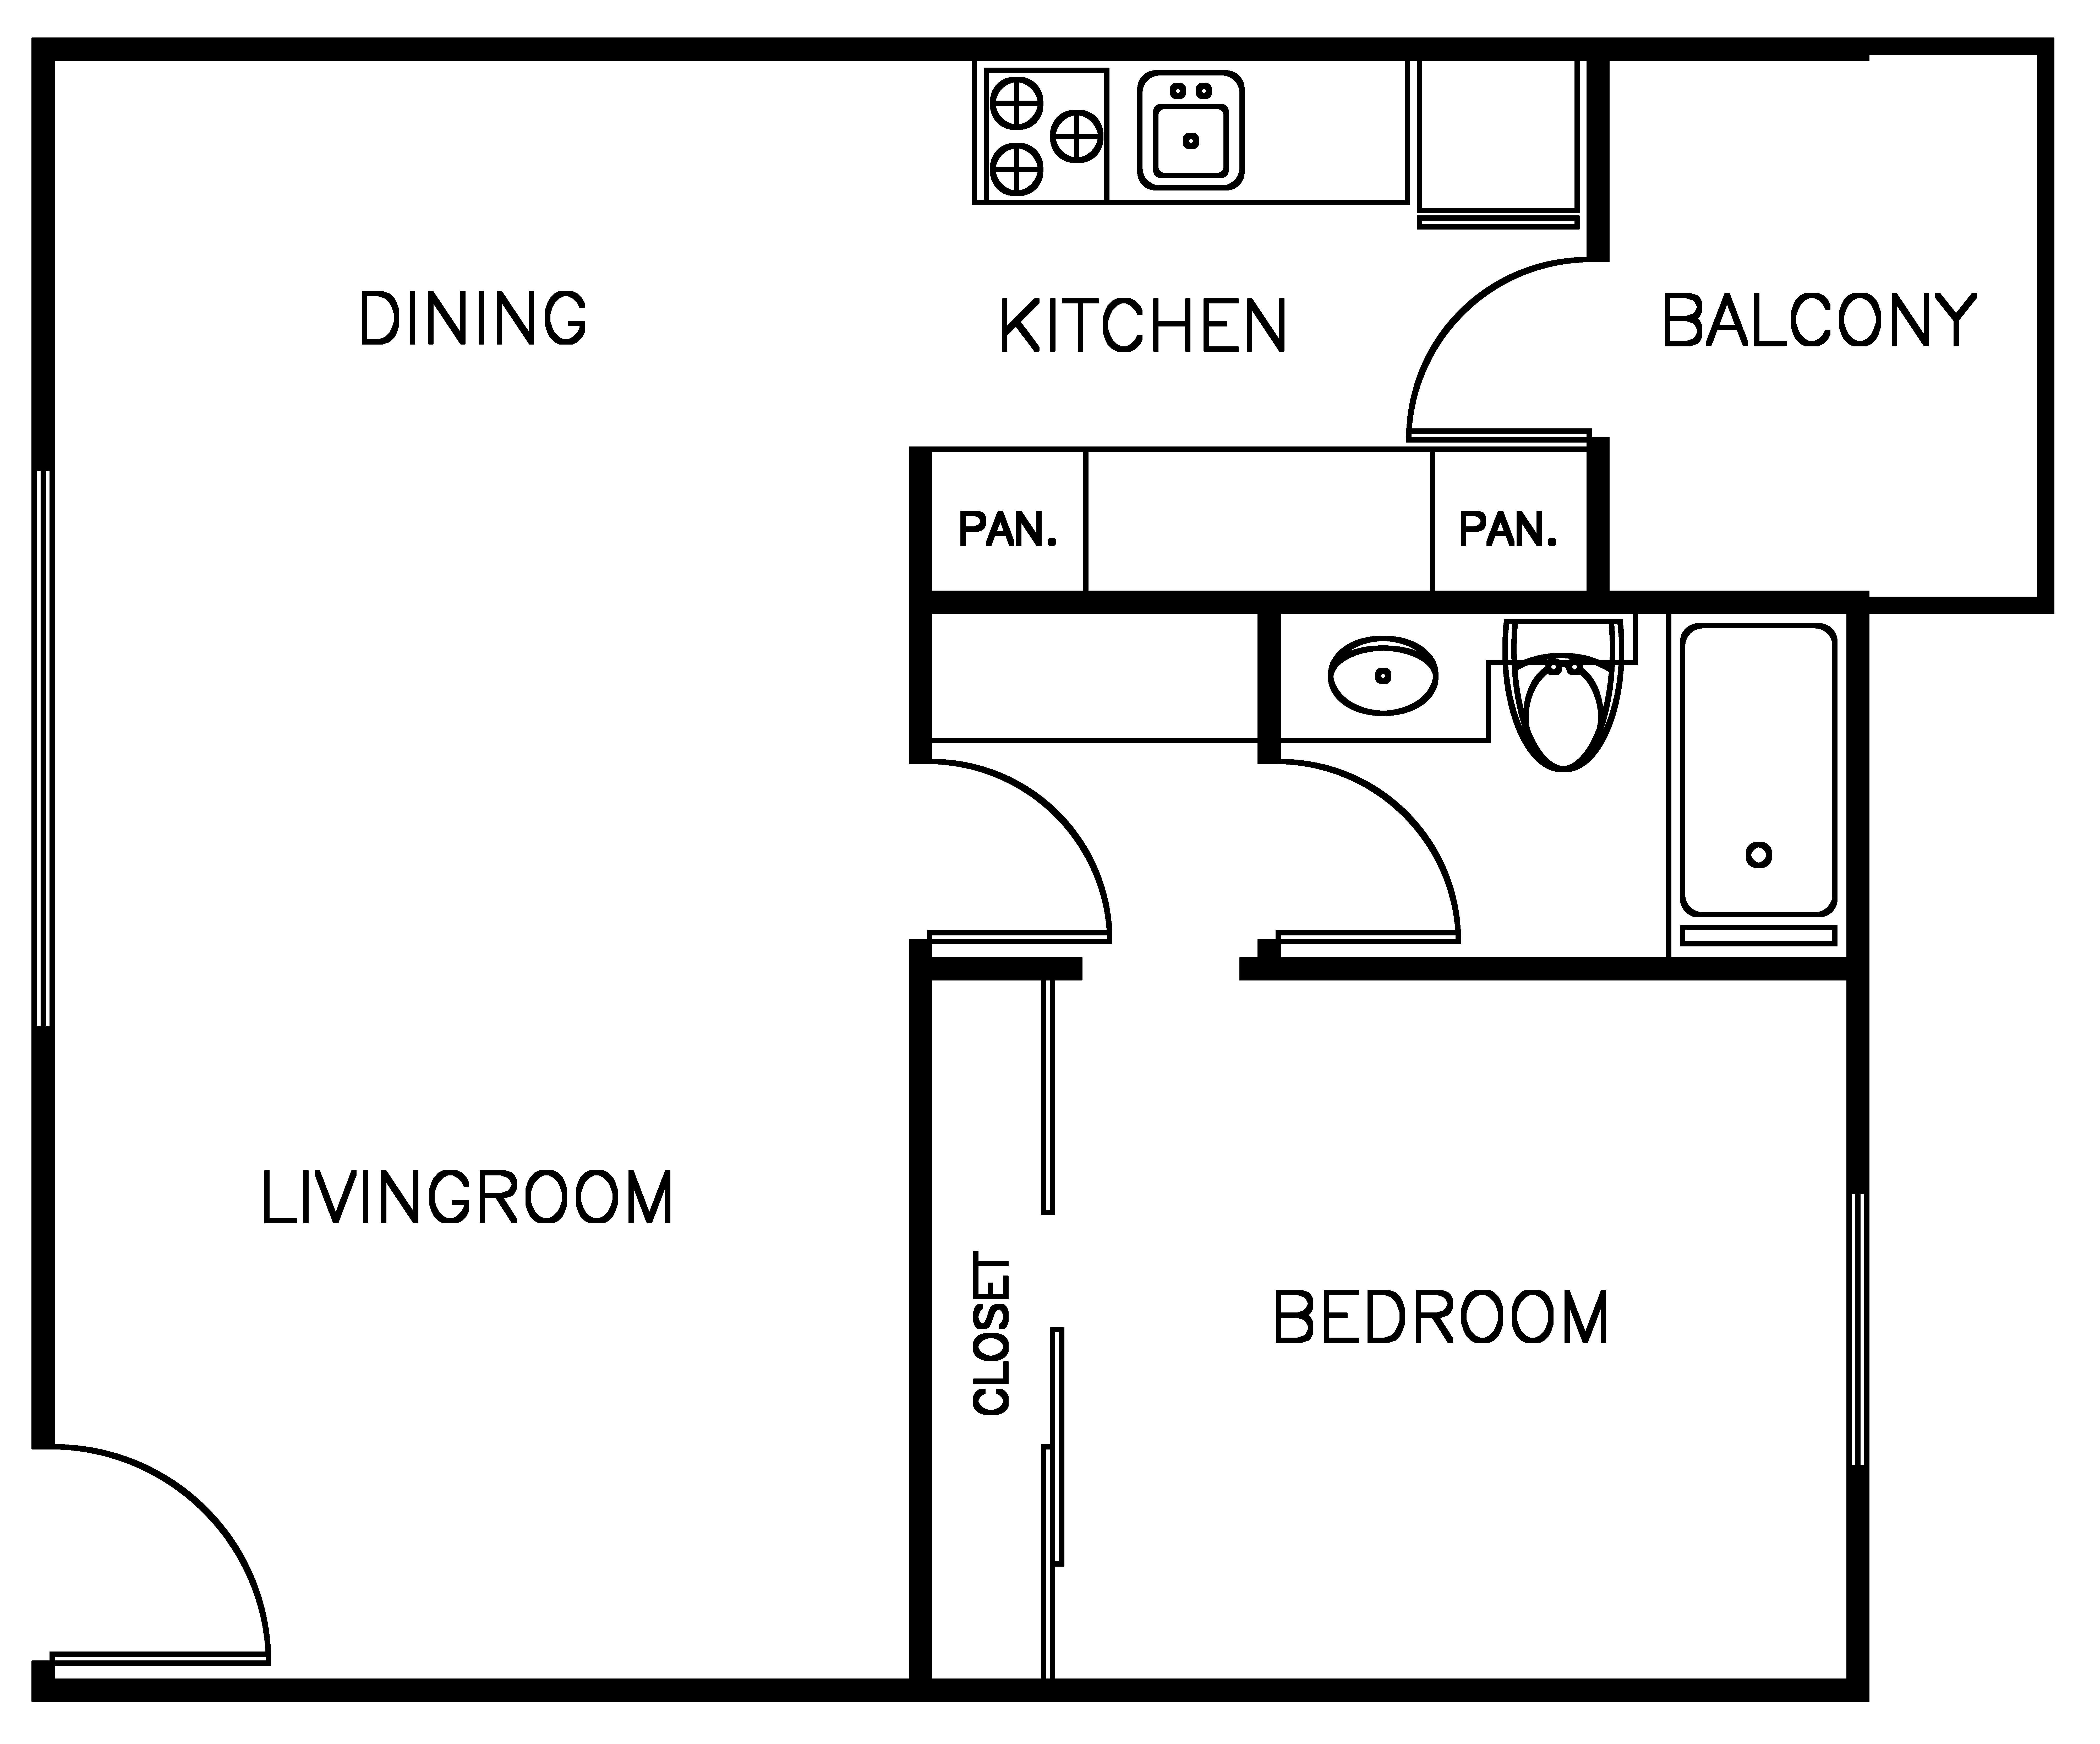 Spacious 1 bedroom floor plan layout